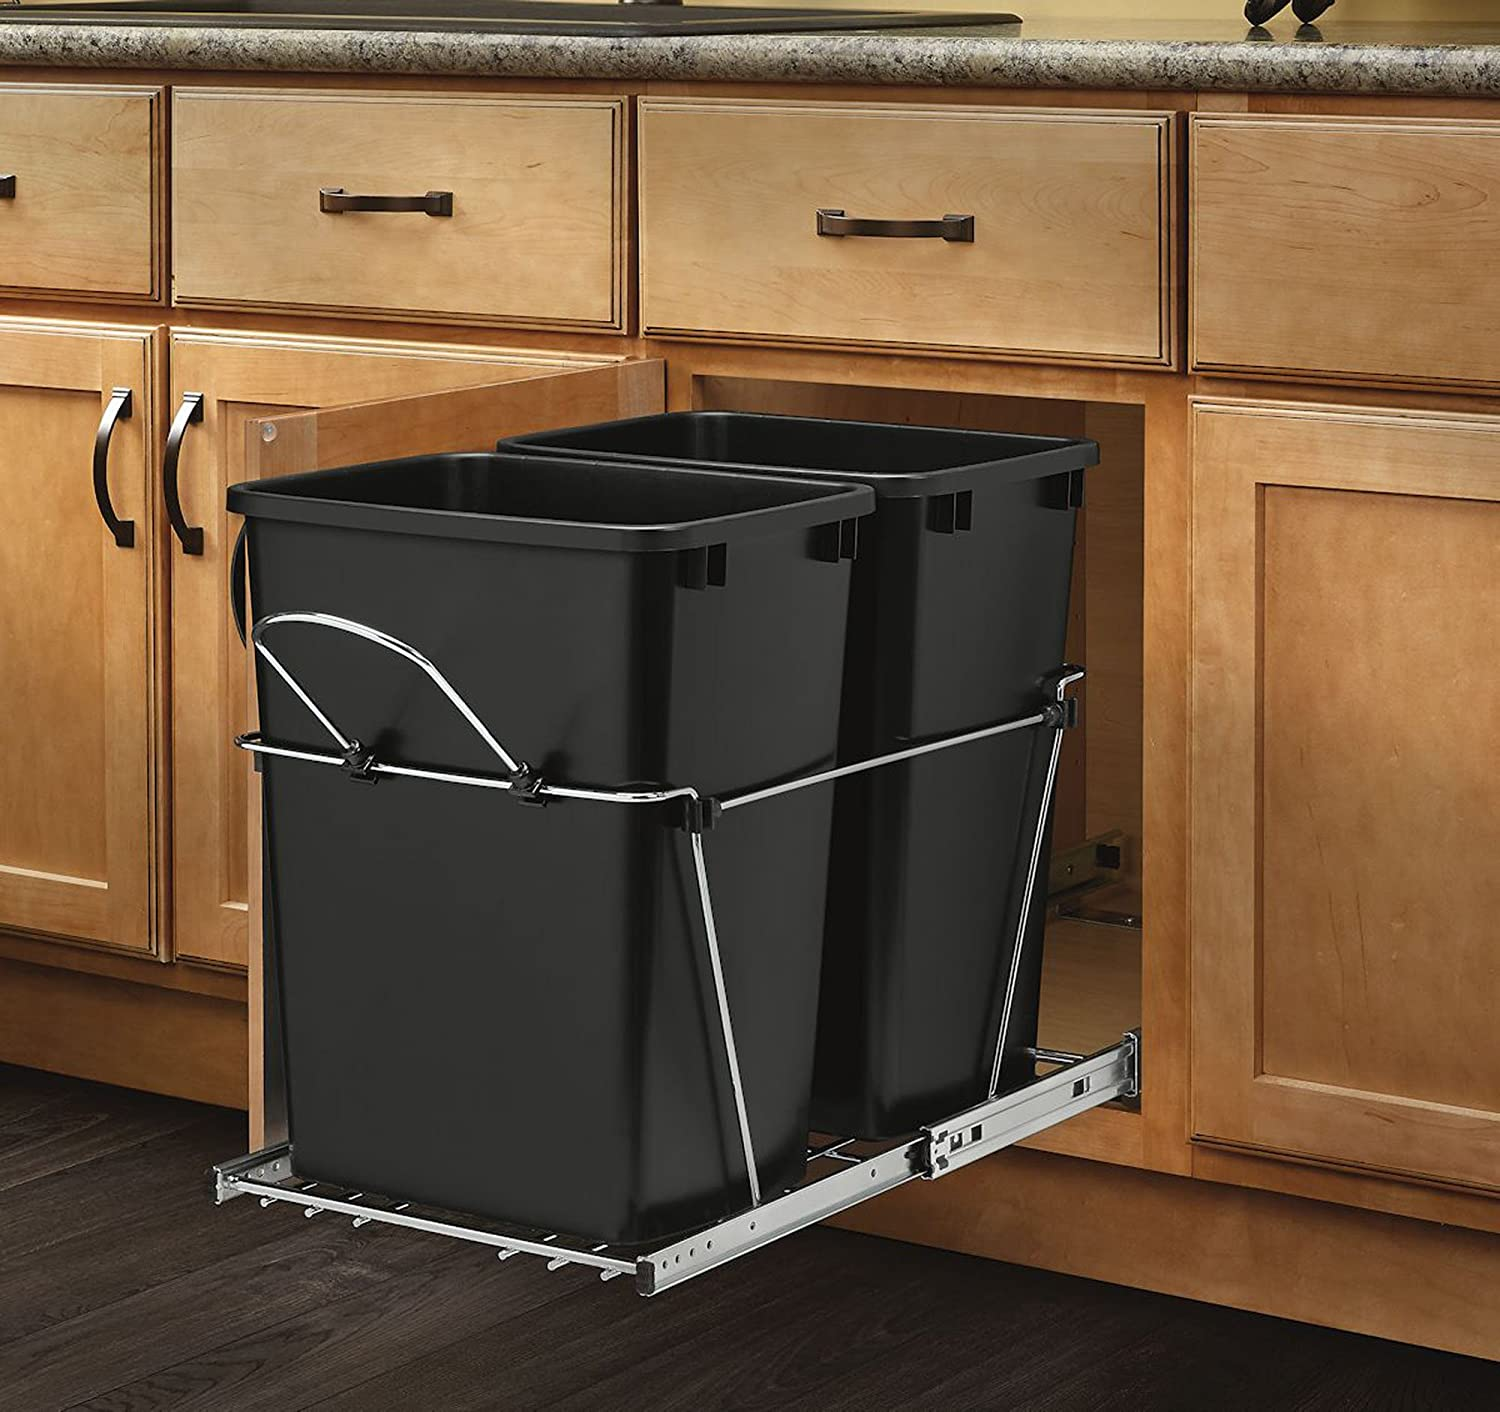 Pull Out Trash Garbage Can Waste Container Kitchen Cabinet Organizer